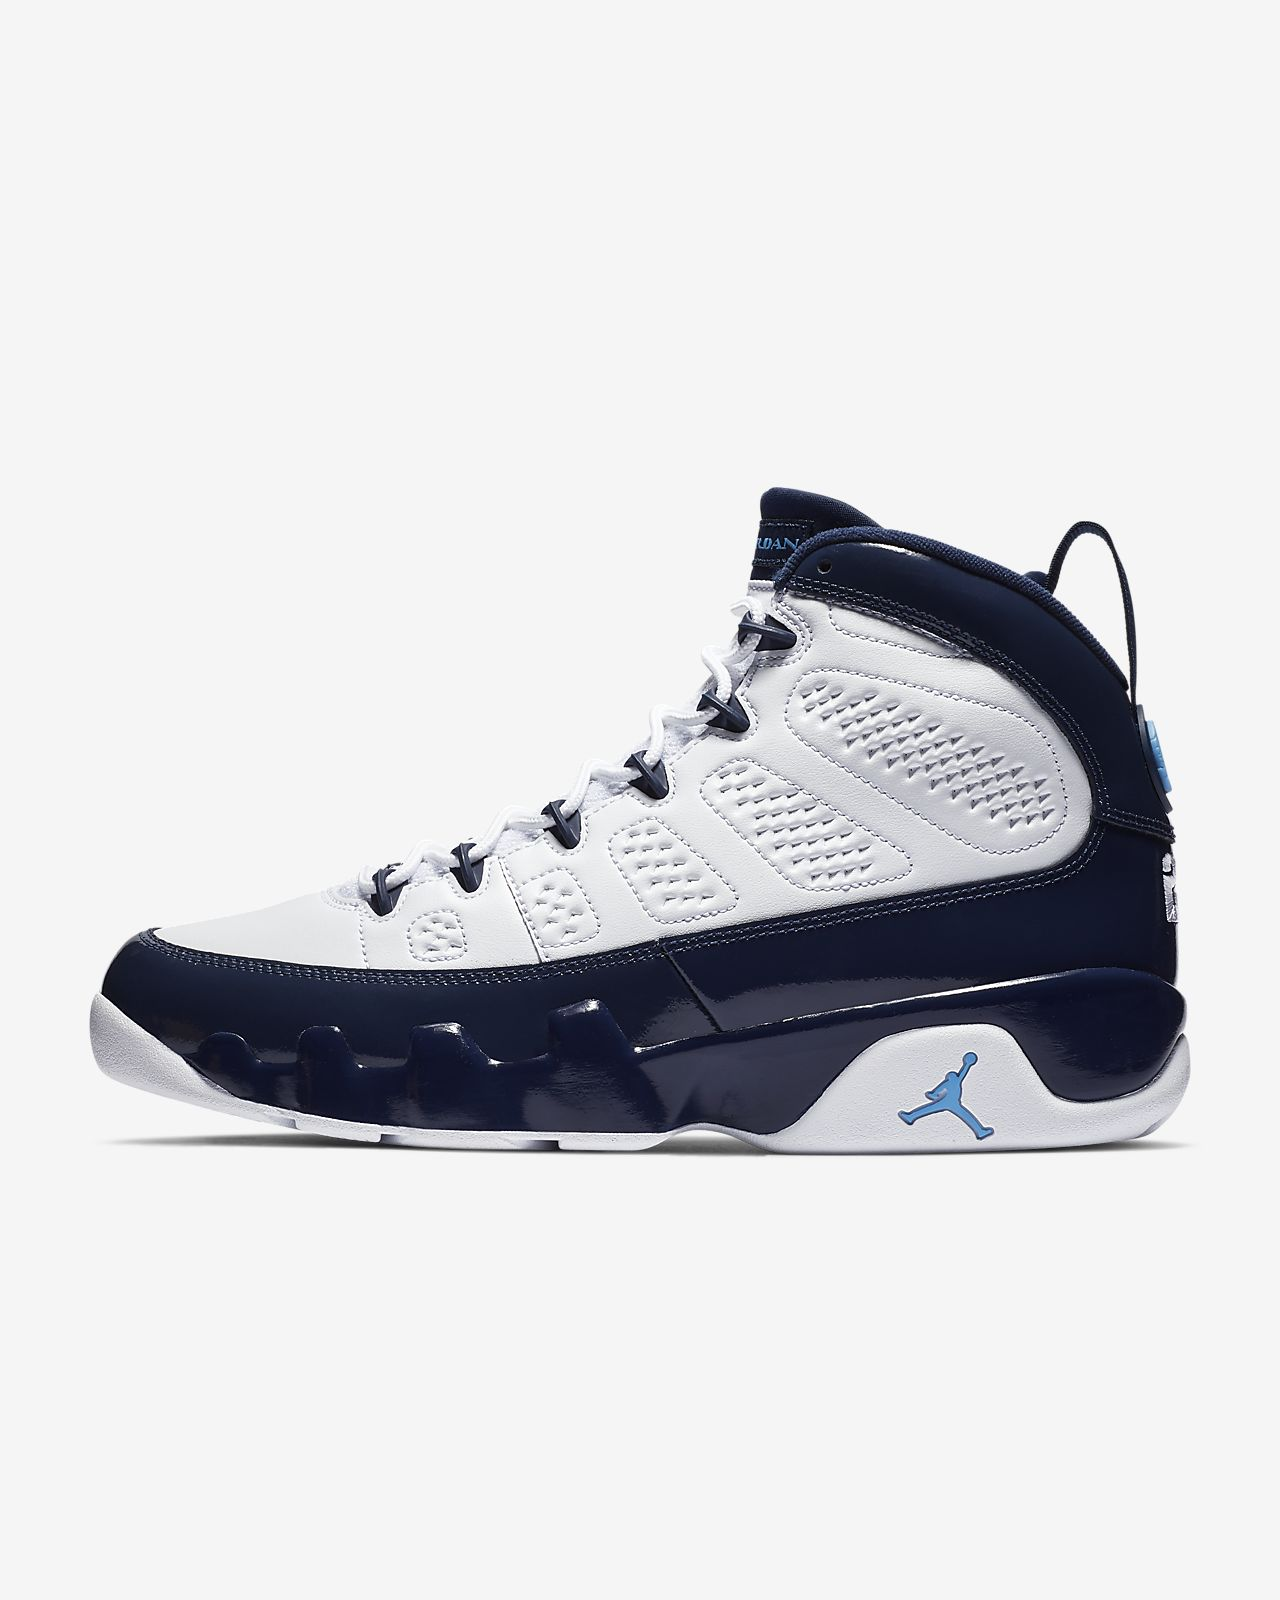 san francisco acb26 917b8 ... Air Jordan 9 Retro Men s Shoe